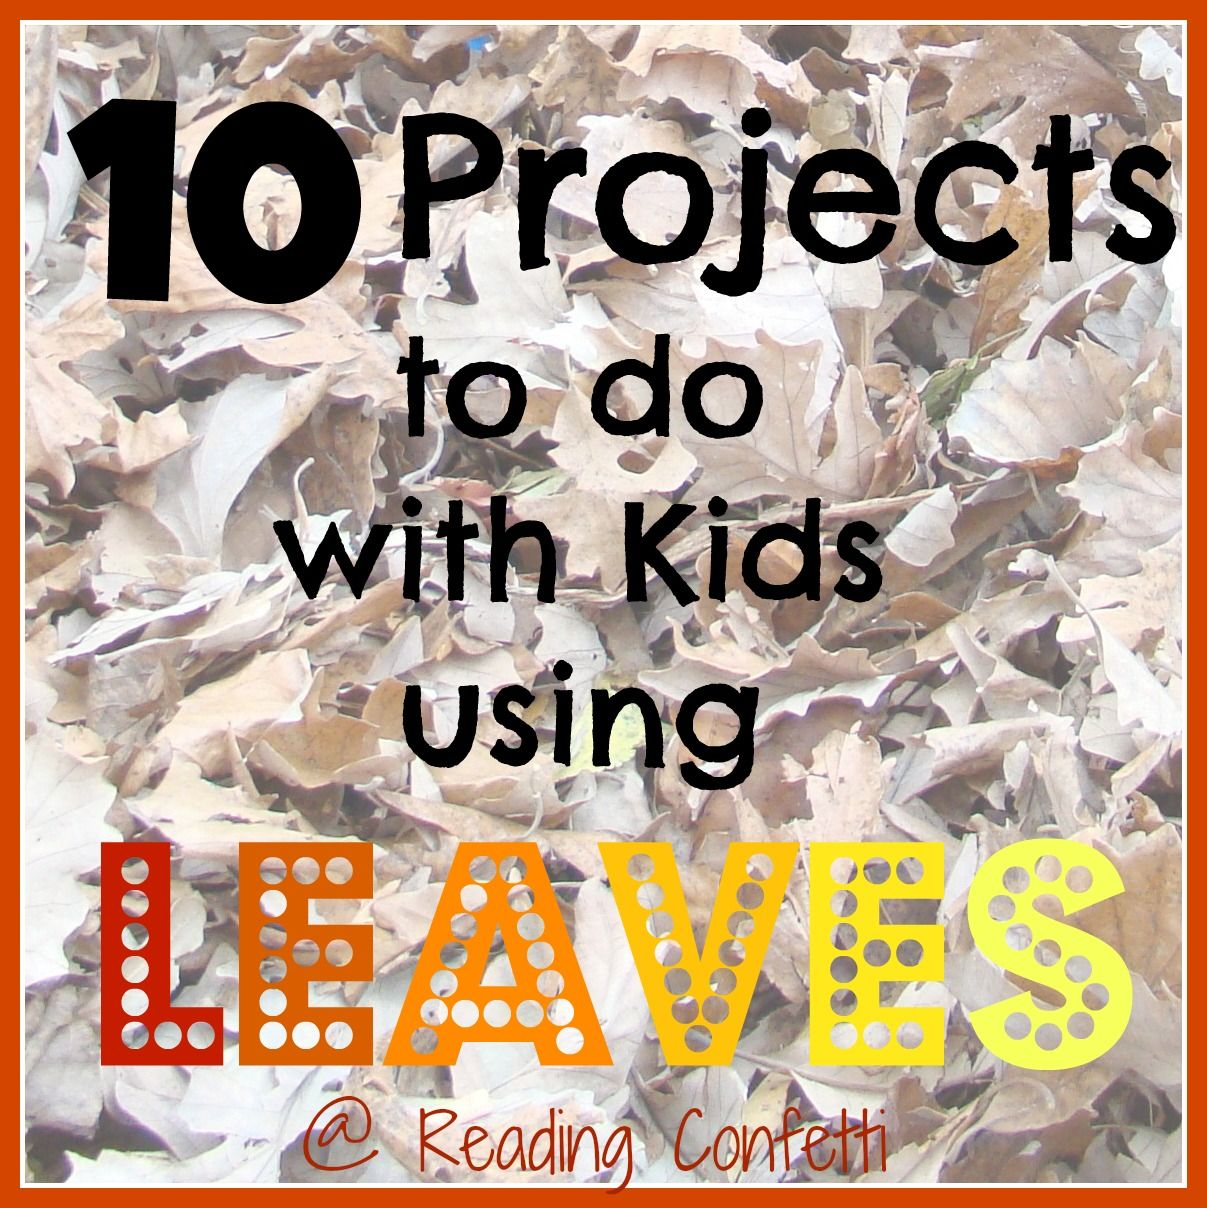 12 Ways to Use Leaves with kids